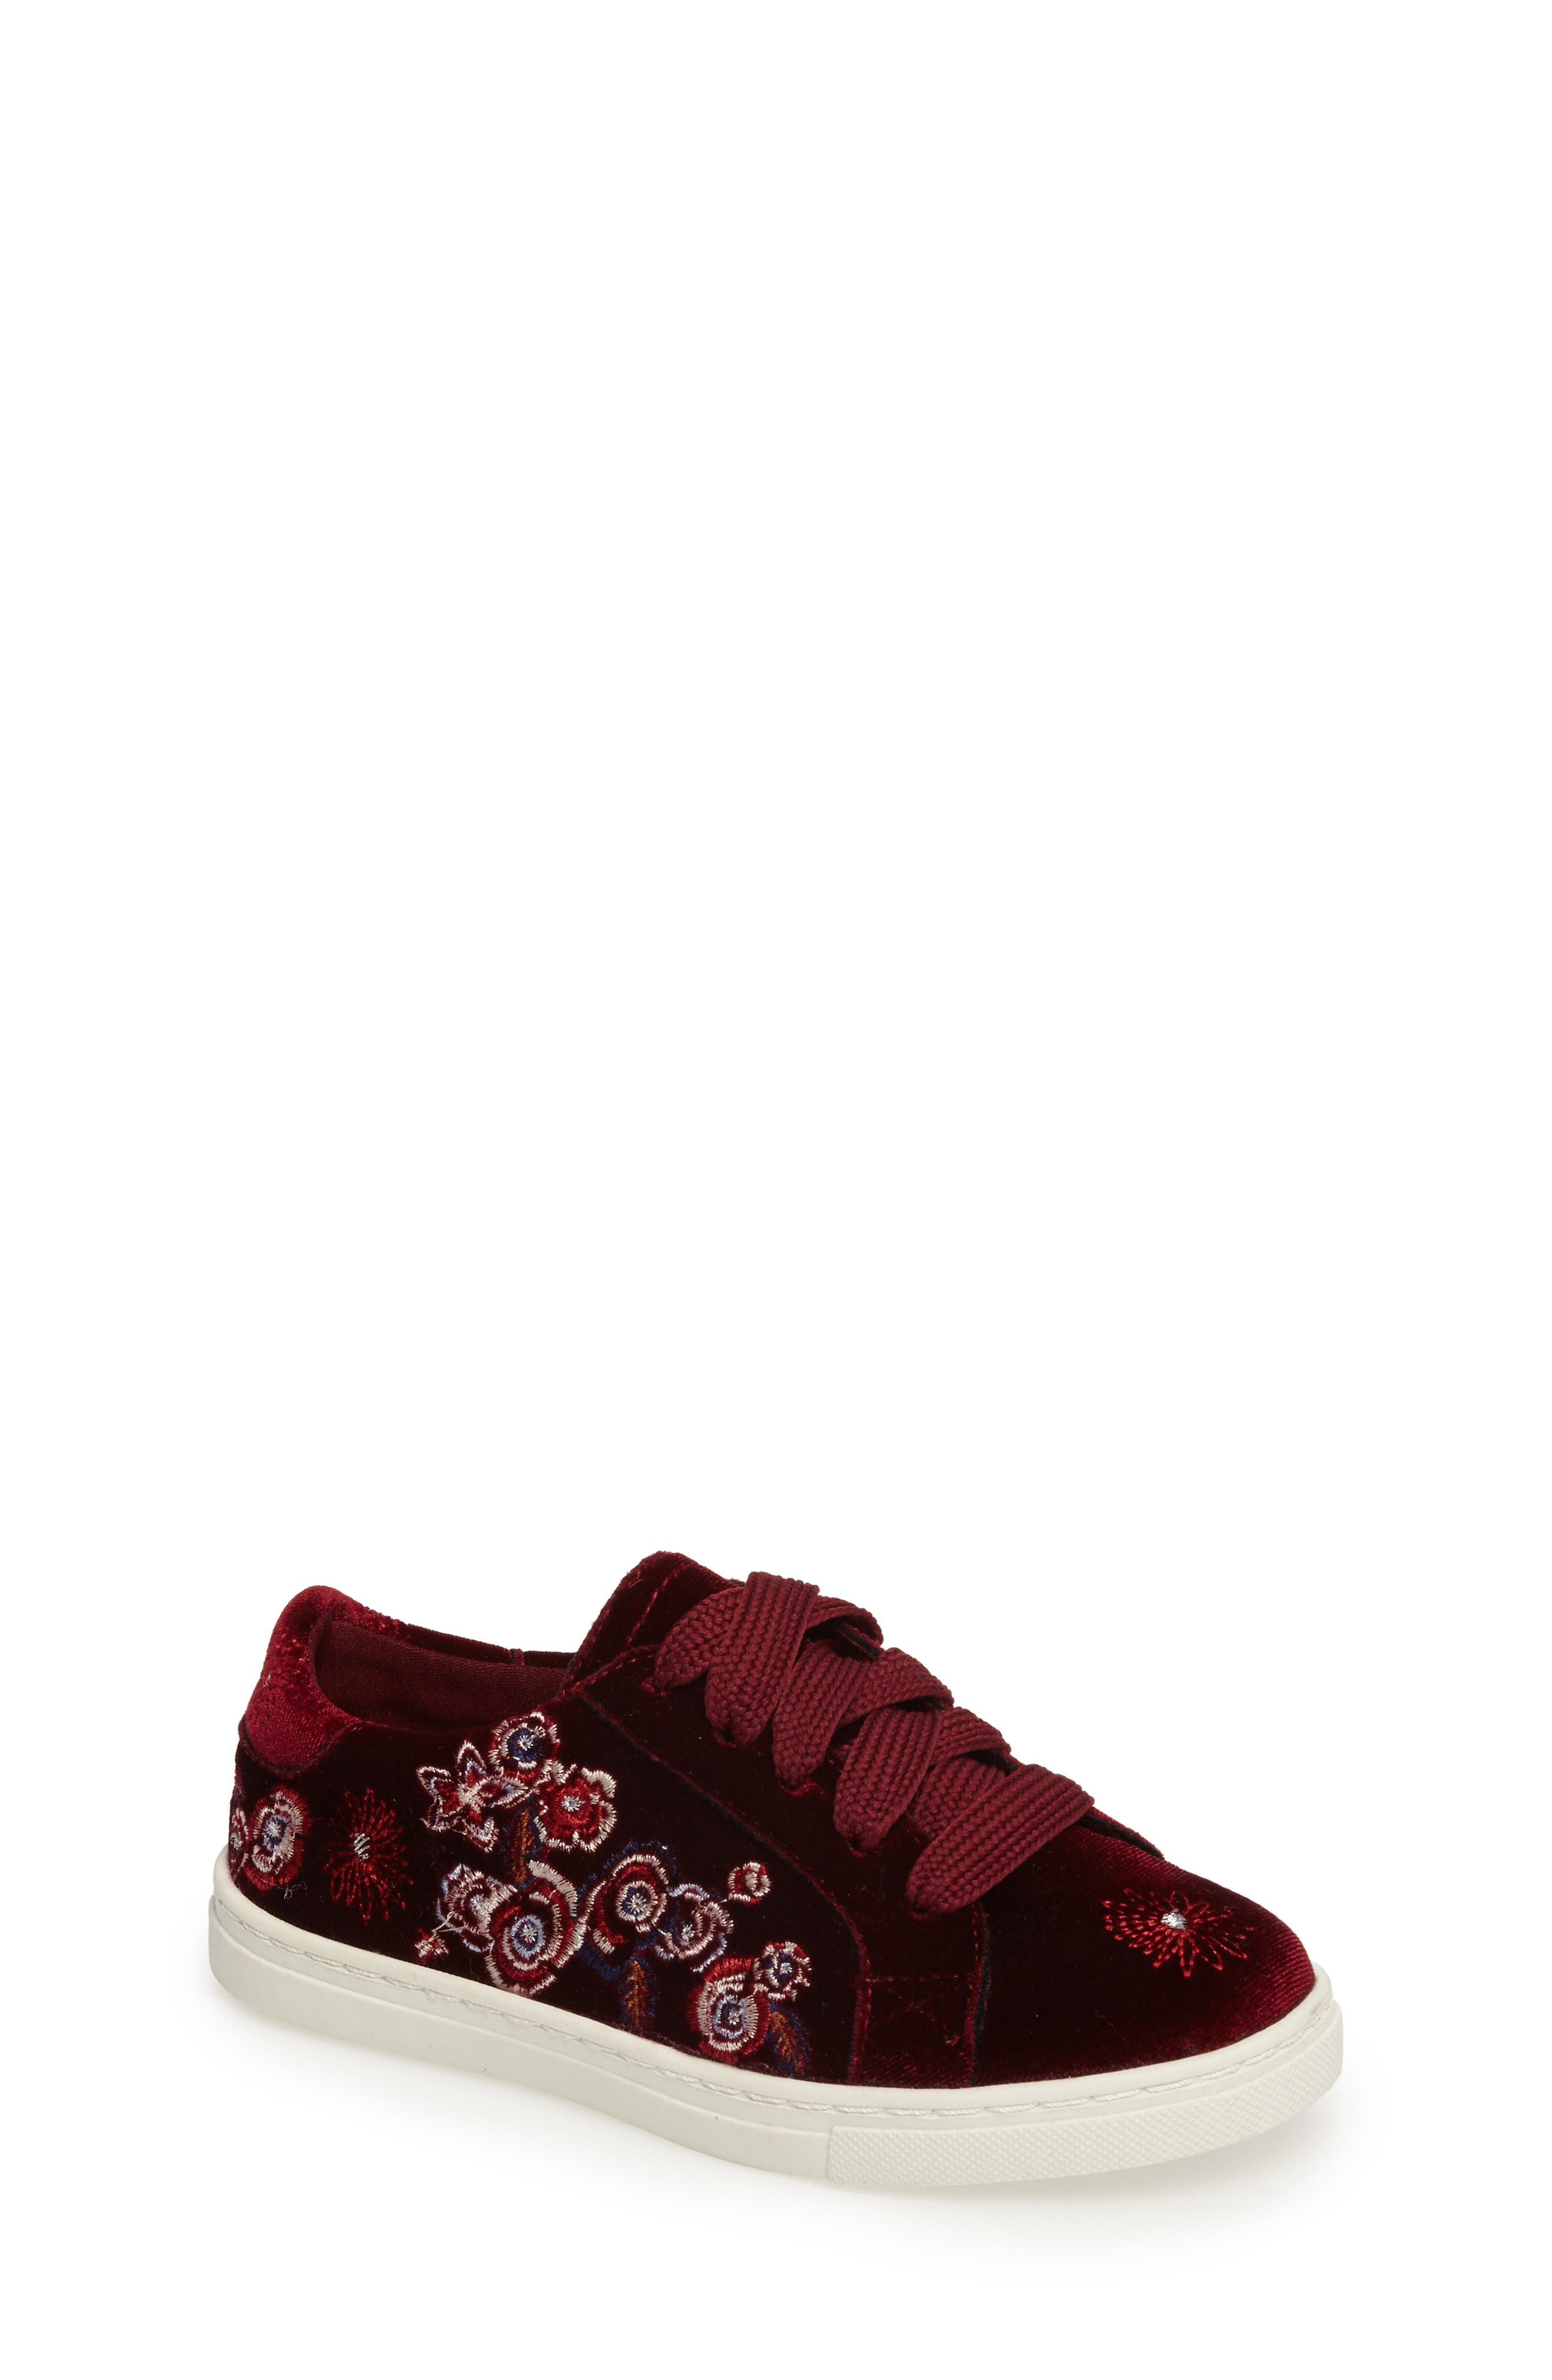 Zolly Floral Embroidered Sneaker,                         Main,                         color,